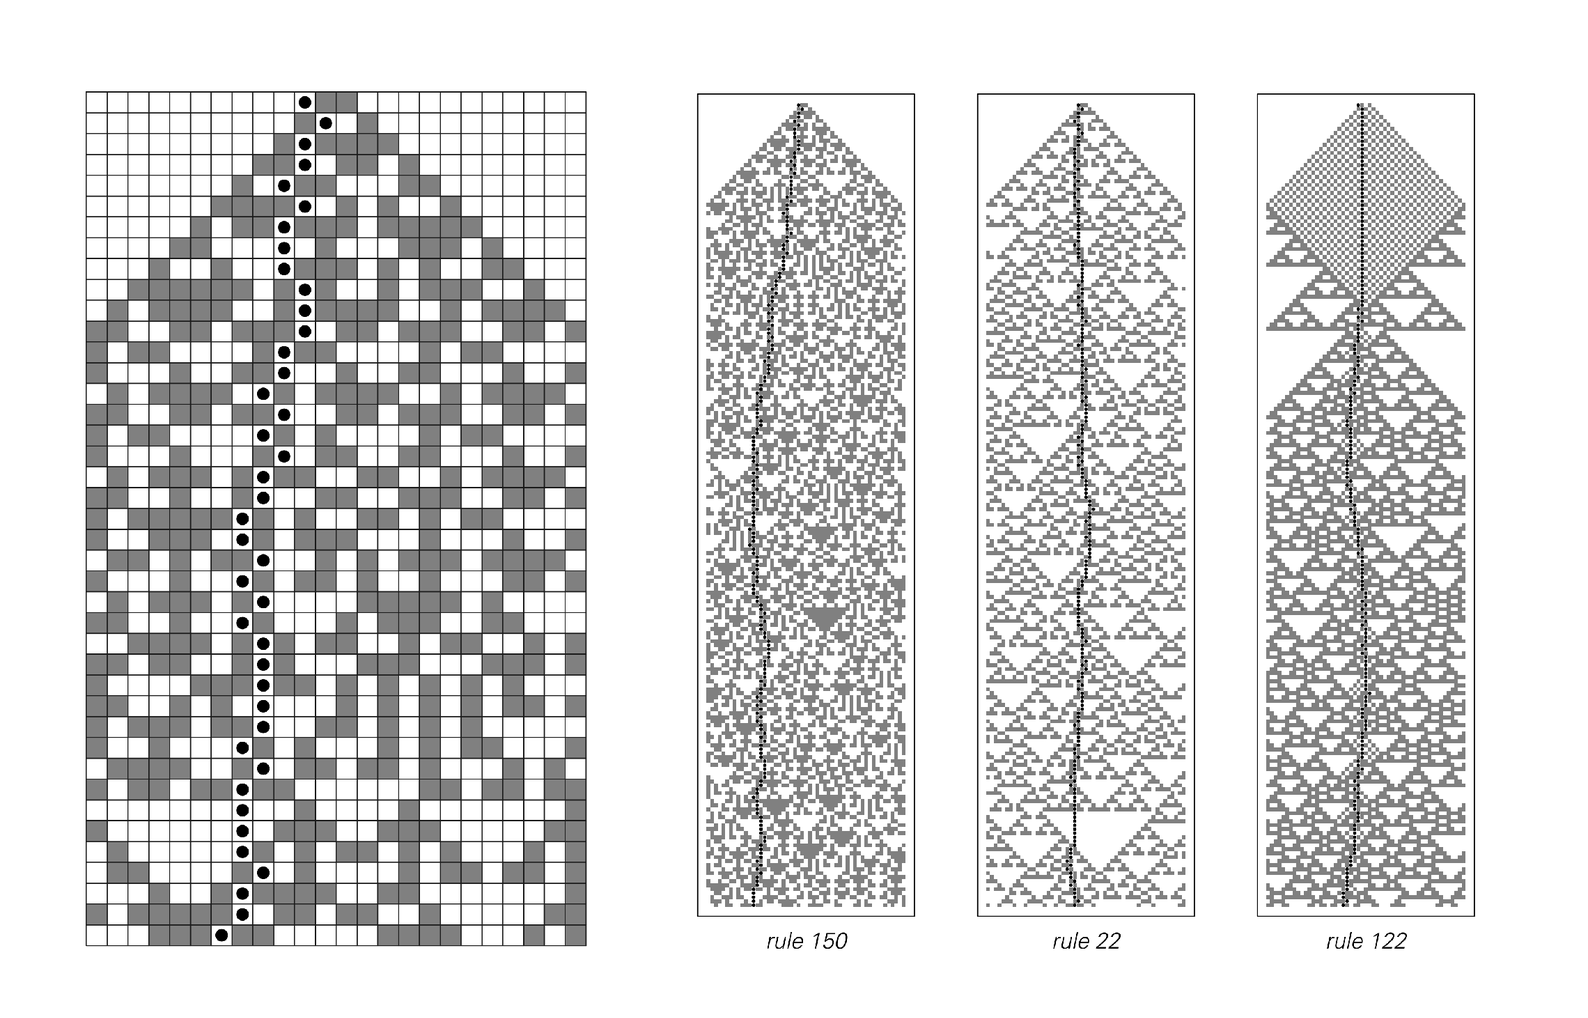 Cellular automaton model for fracture